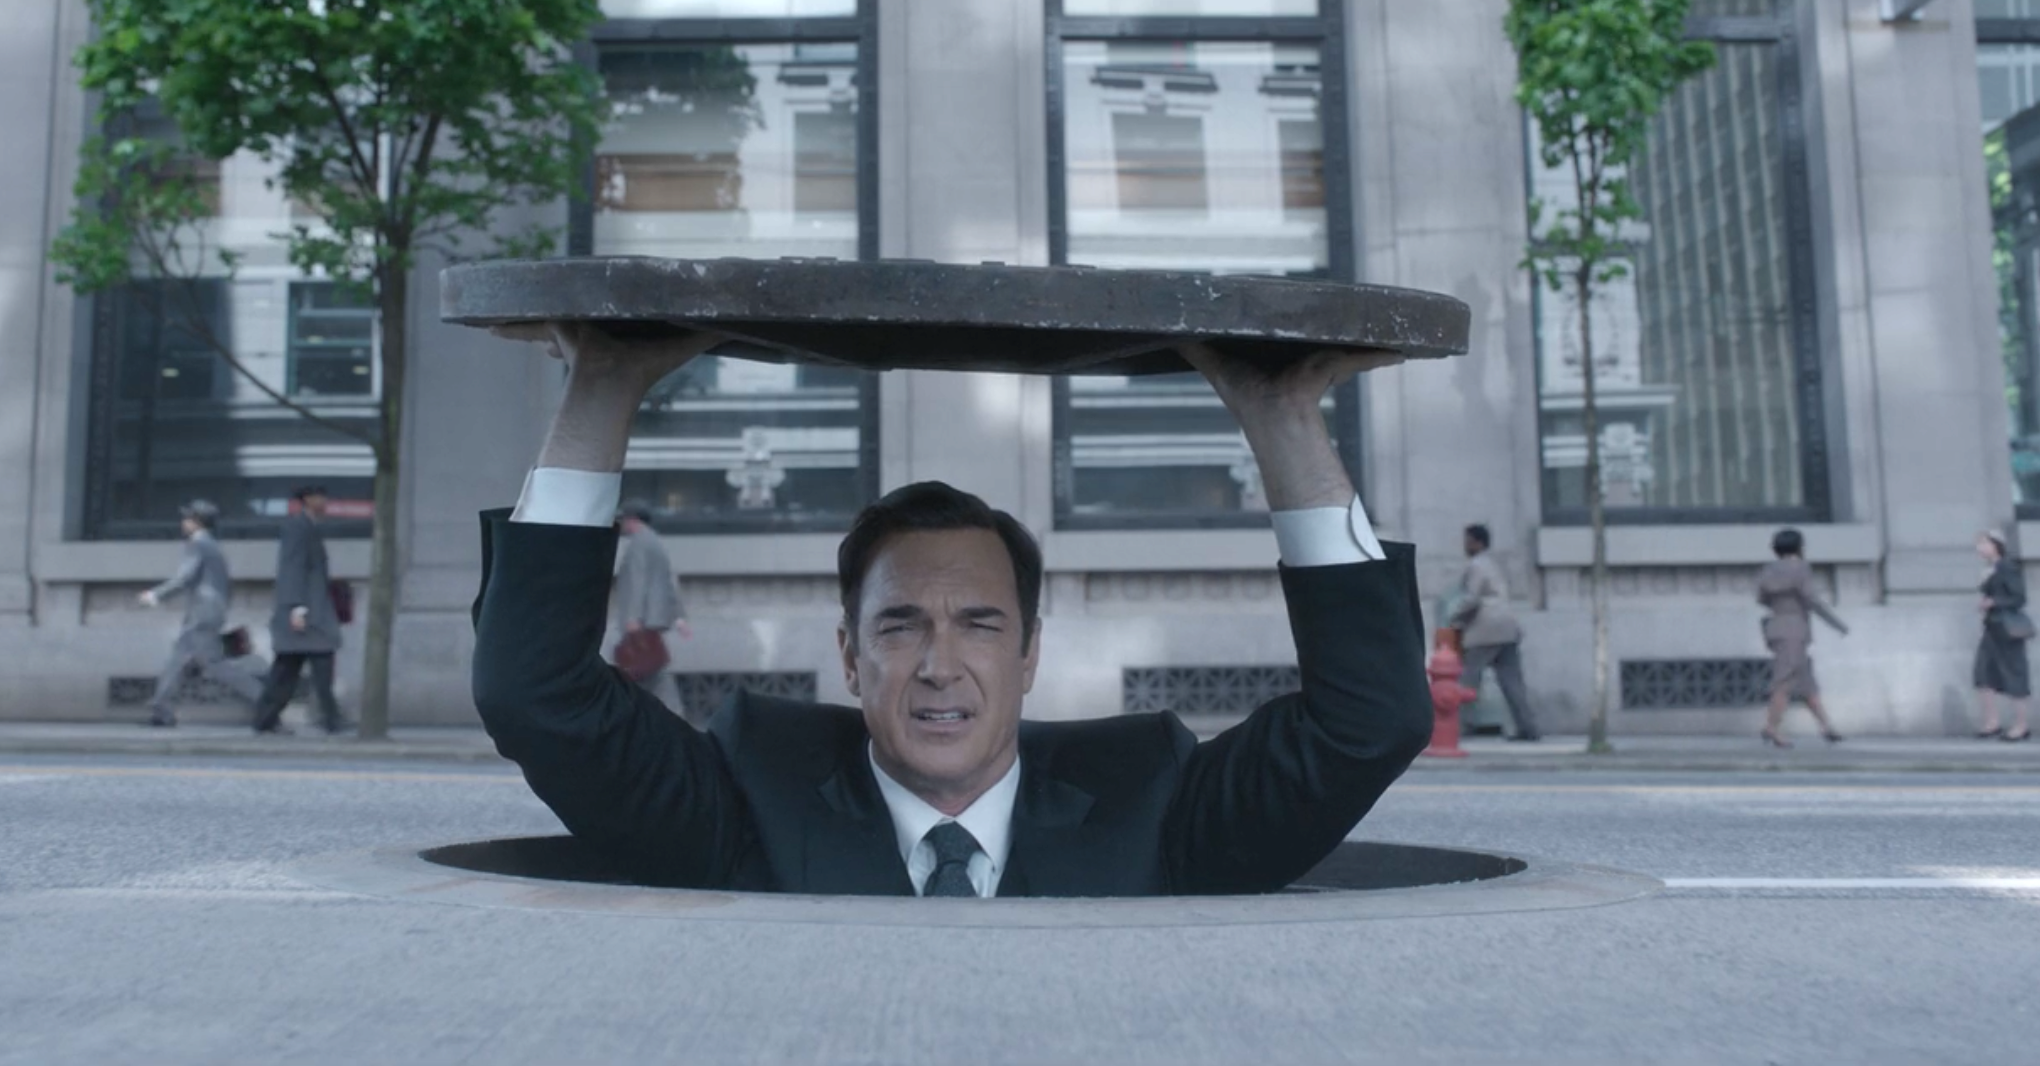 Patrick Warburton as Lemony Snicket in 'A Series of Unfortunate Events'